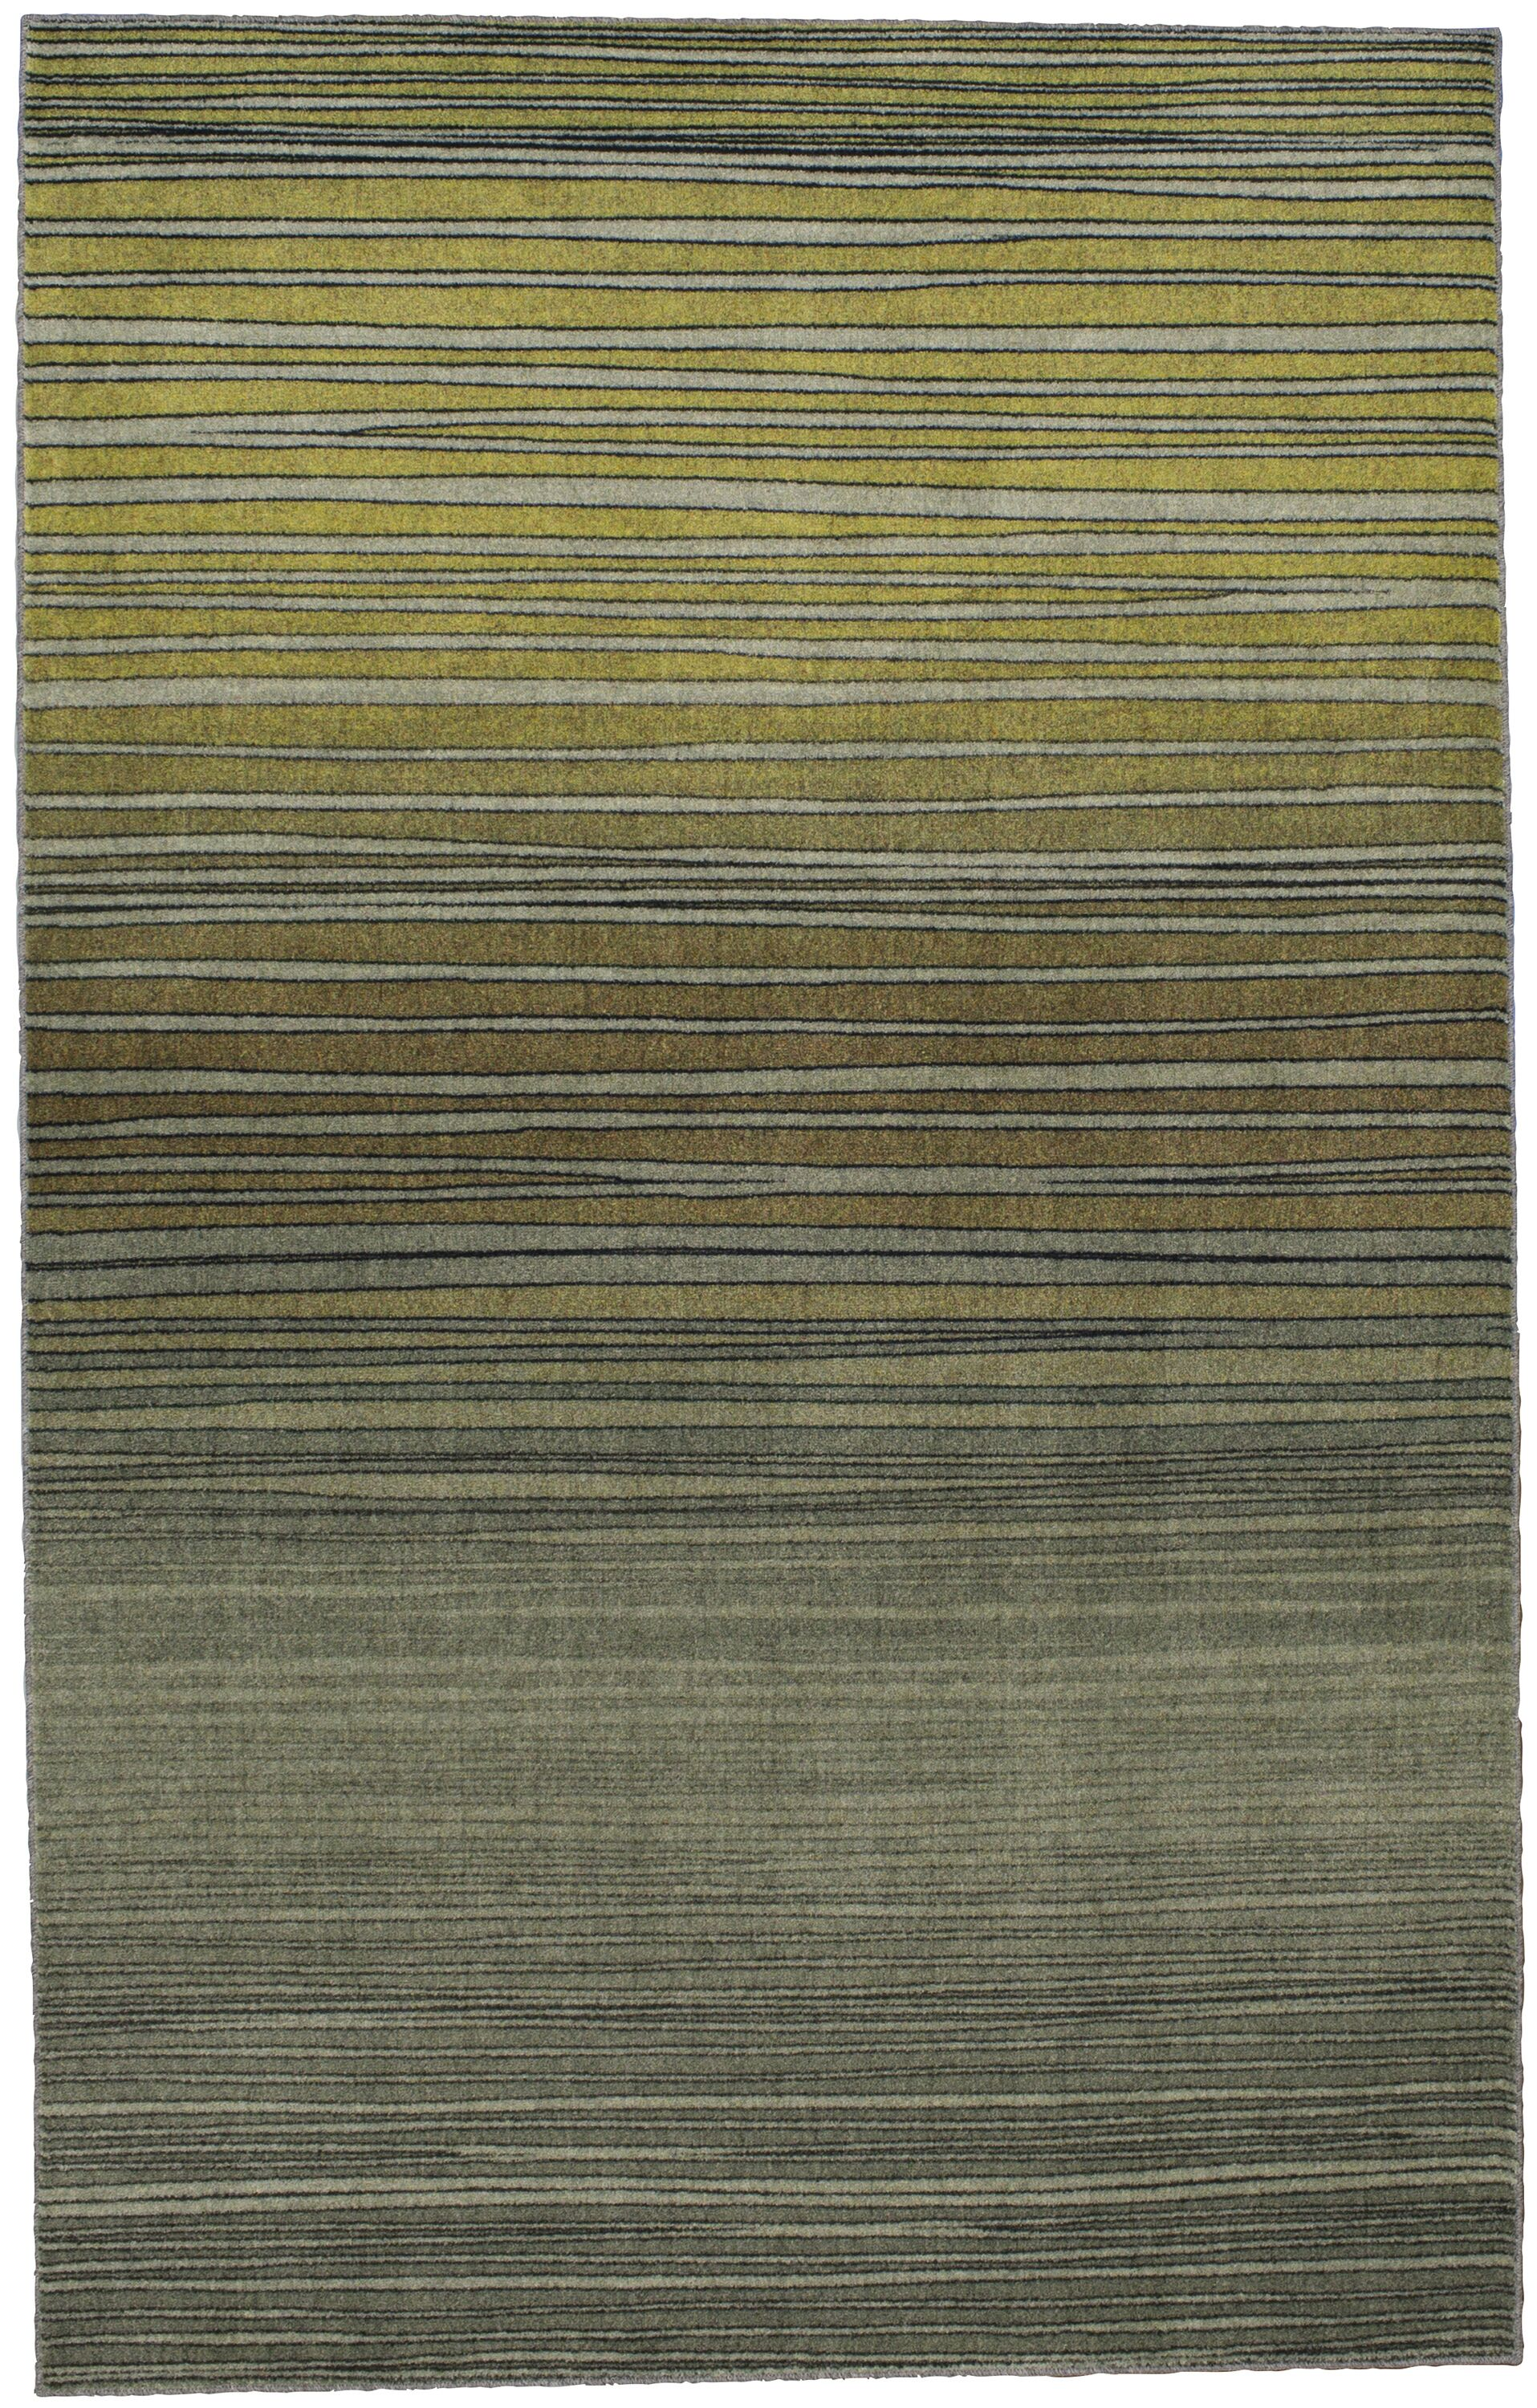 Clement Horizon Line Green Area Rug Rug Size: Rectangle 8' x 10'